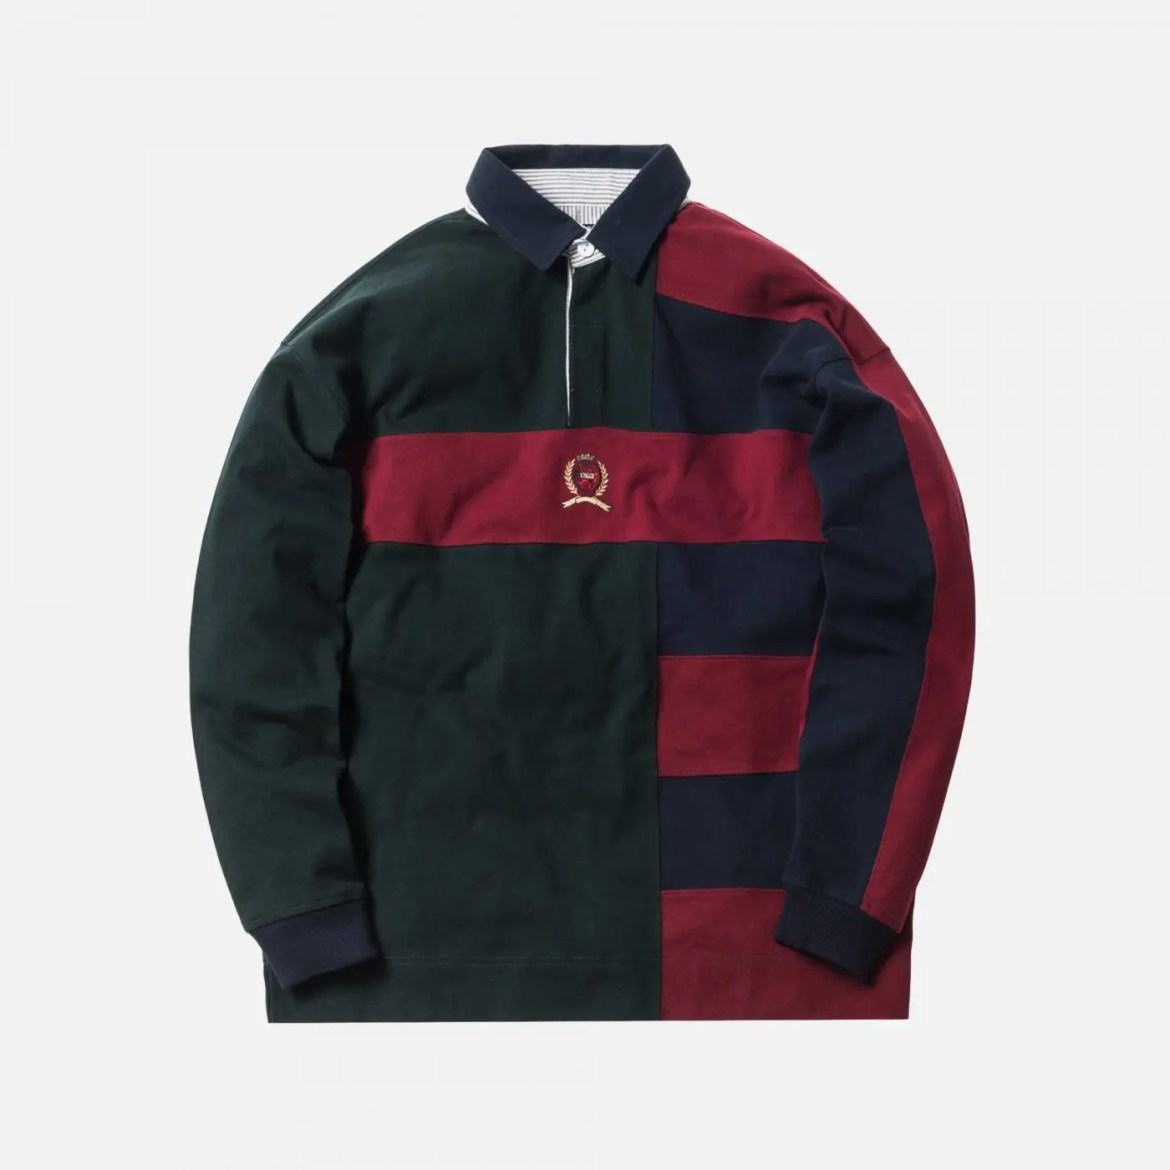 KITH X TOMMY HILFIGER COLOR BLOCK RUGBY - NAVY